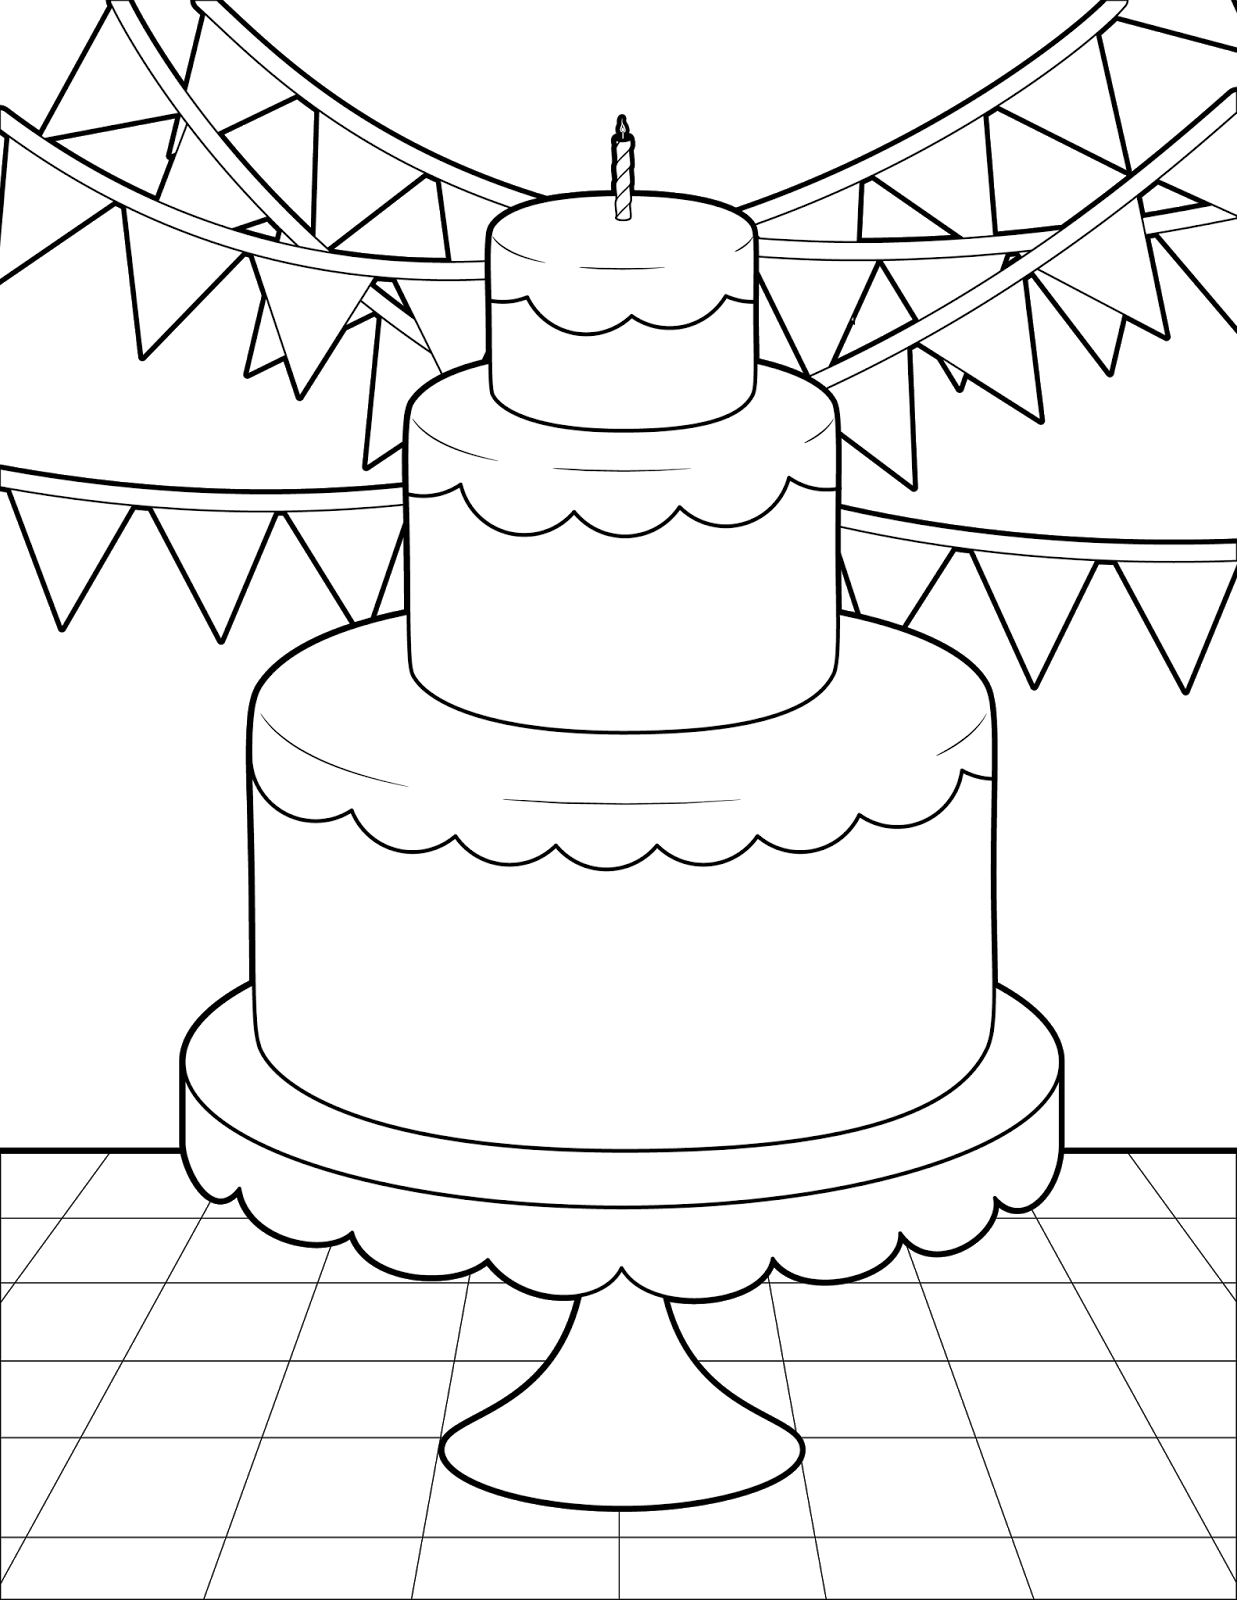 happy birthday cake coloring birthday cake coloring pages to download and print for free happy coloring birthday cake